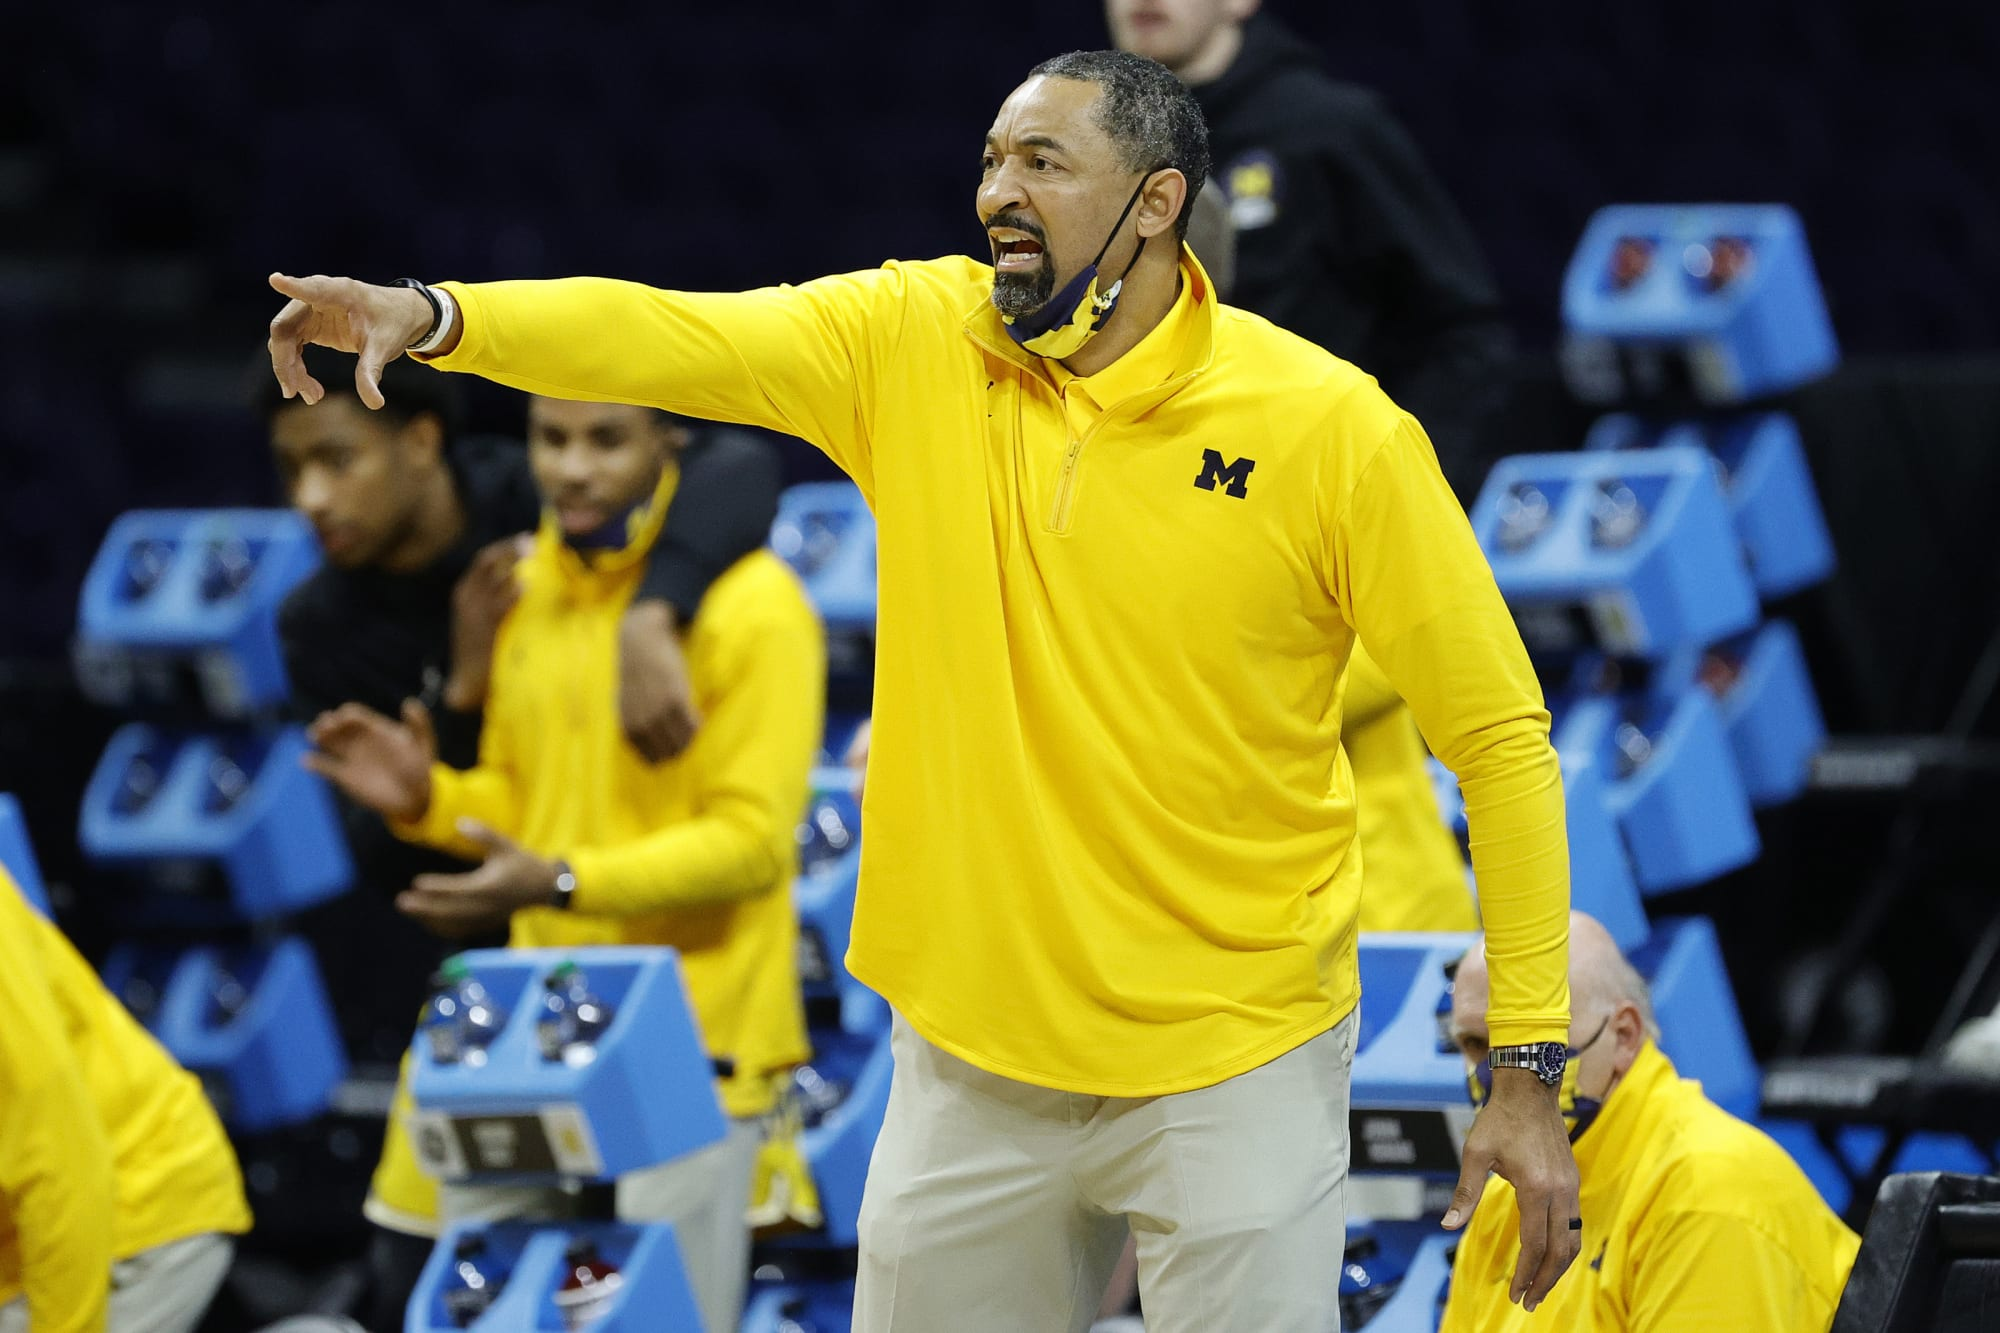 UNC Basketball: Michigan Wolverines offer top UNC recruiting target